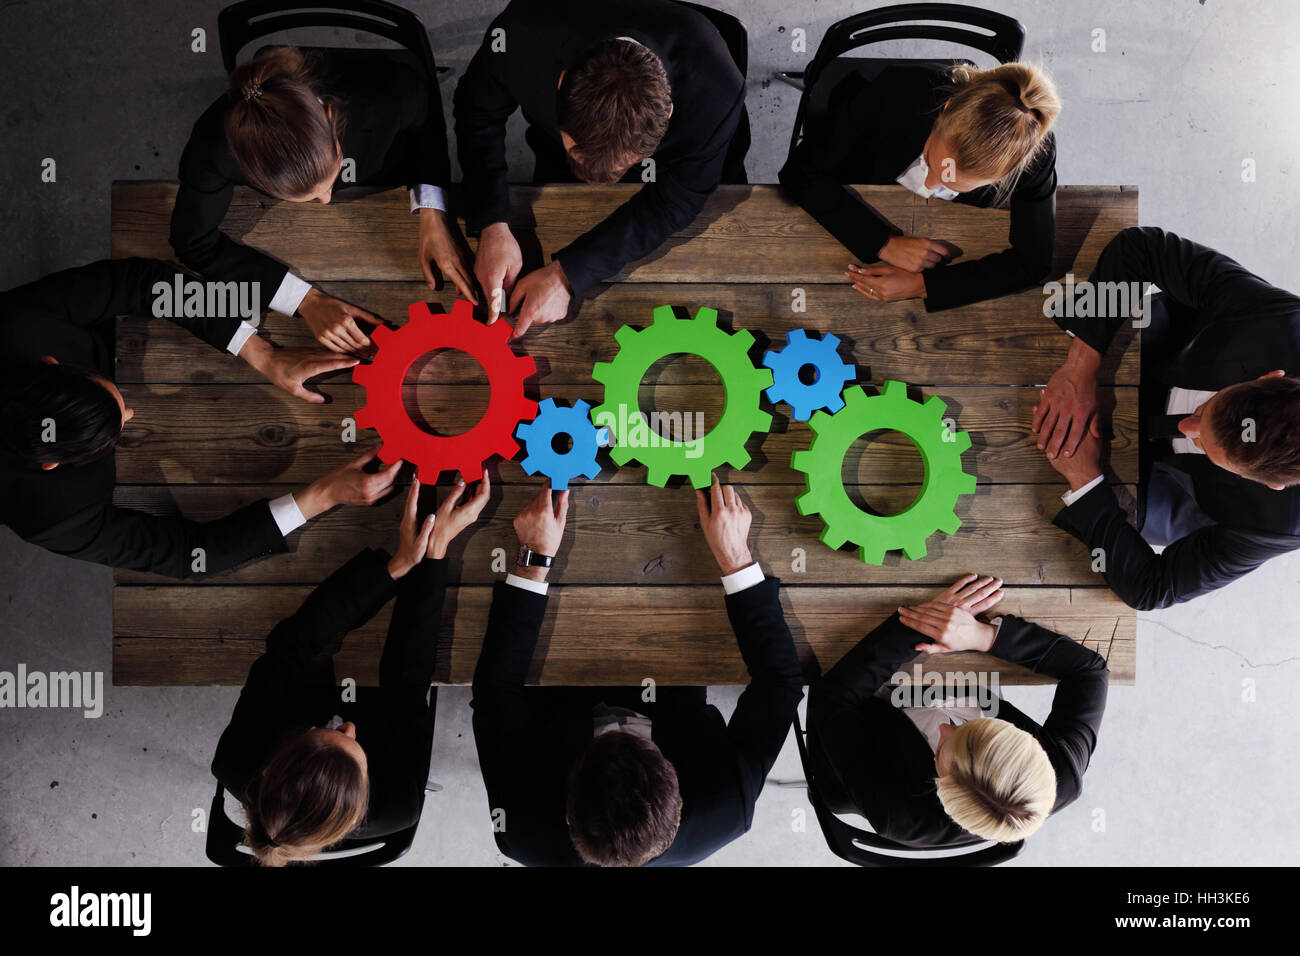 Group of business people seen from above gathering cogs of business sitting together around the table - Stock Image